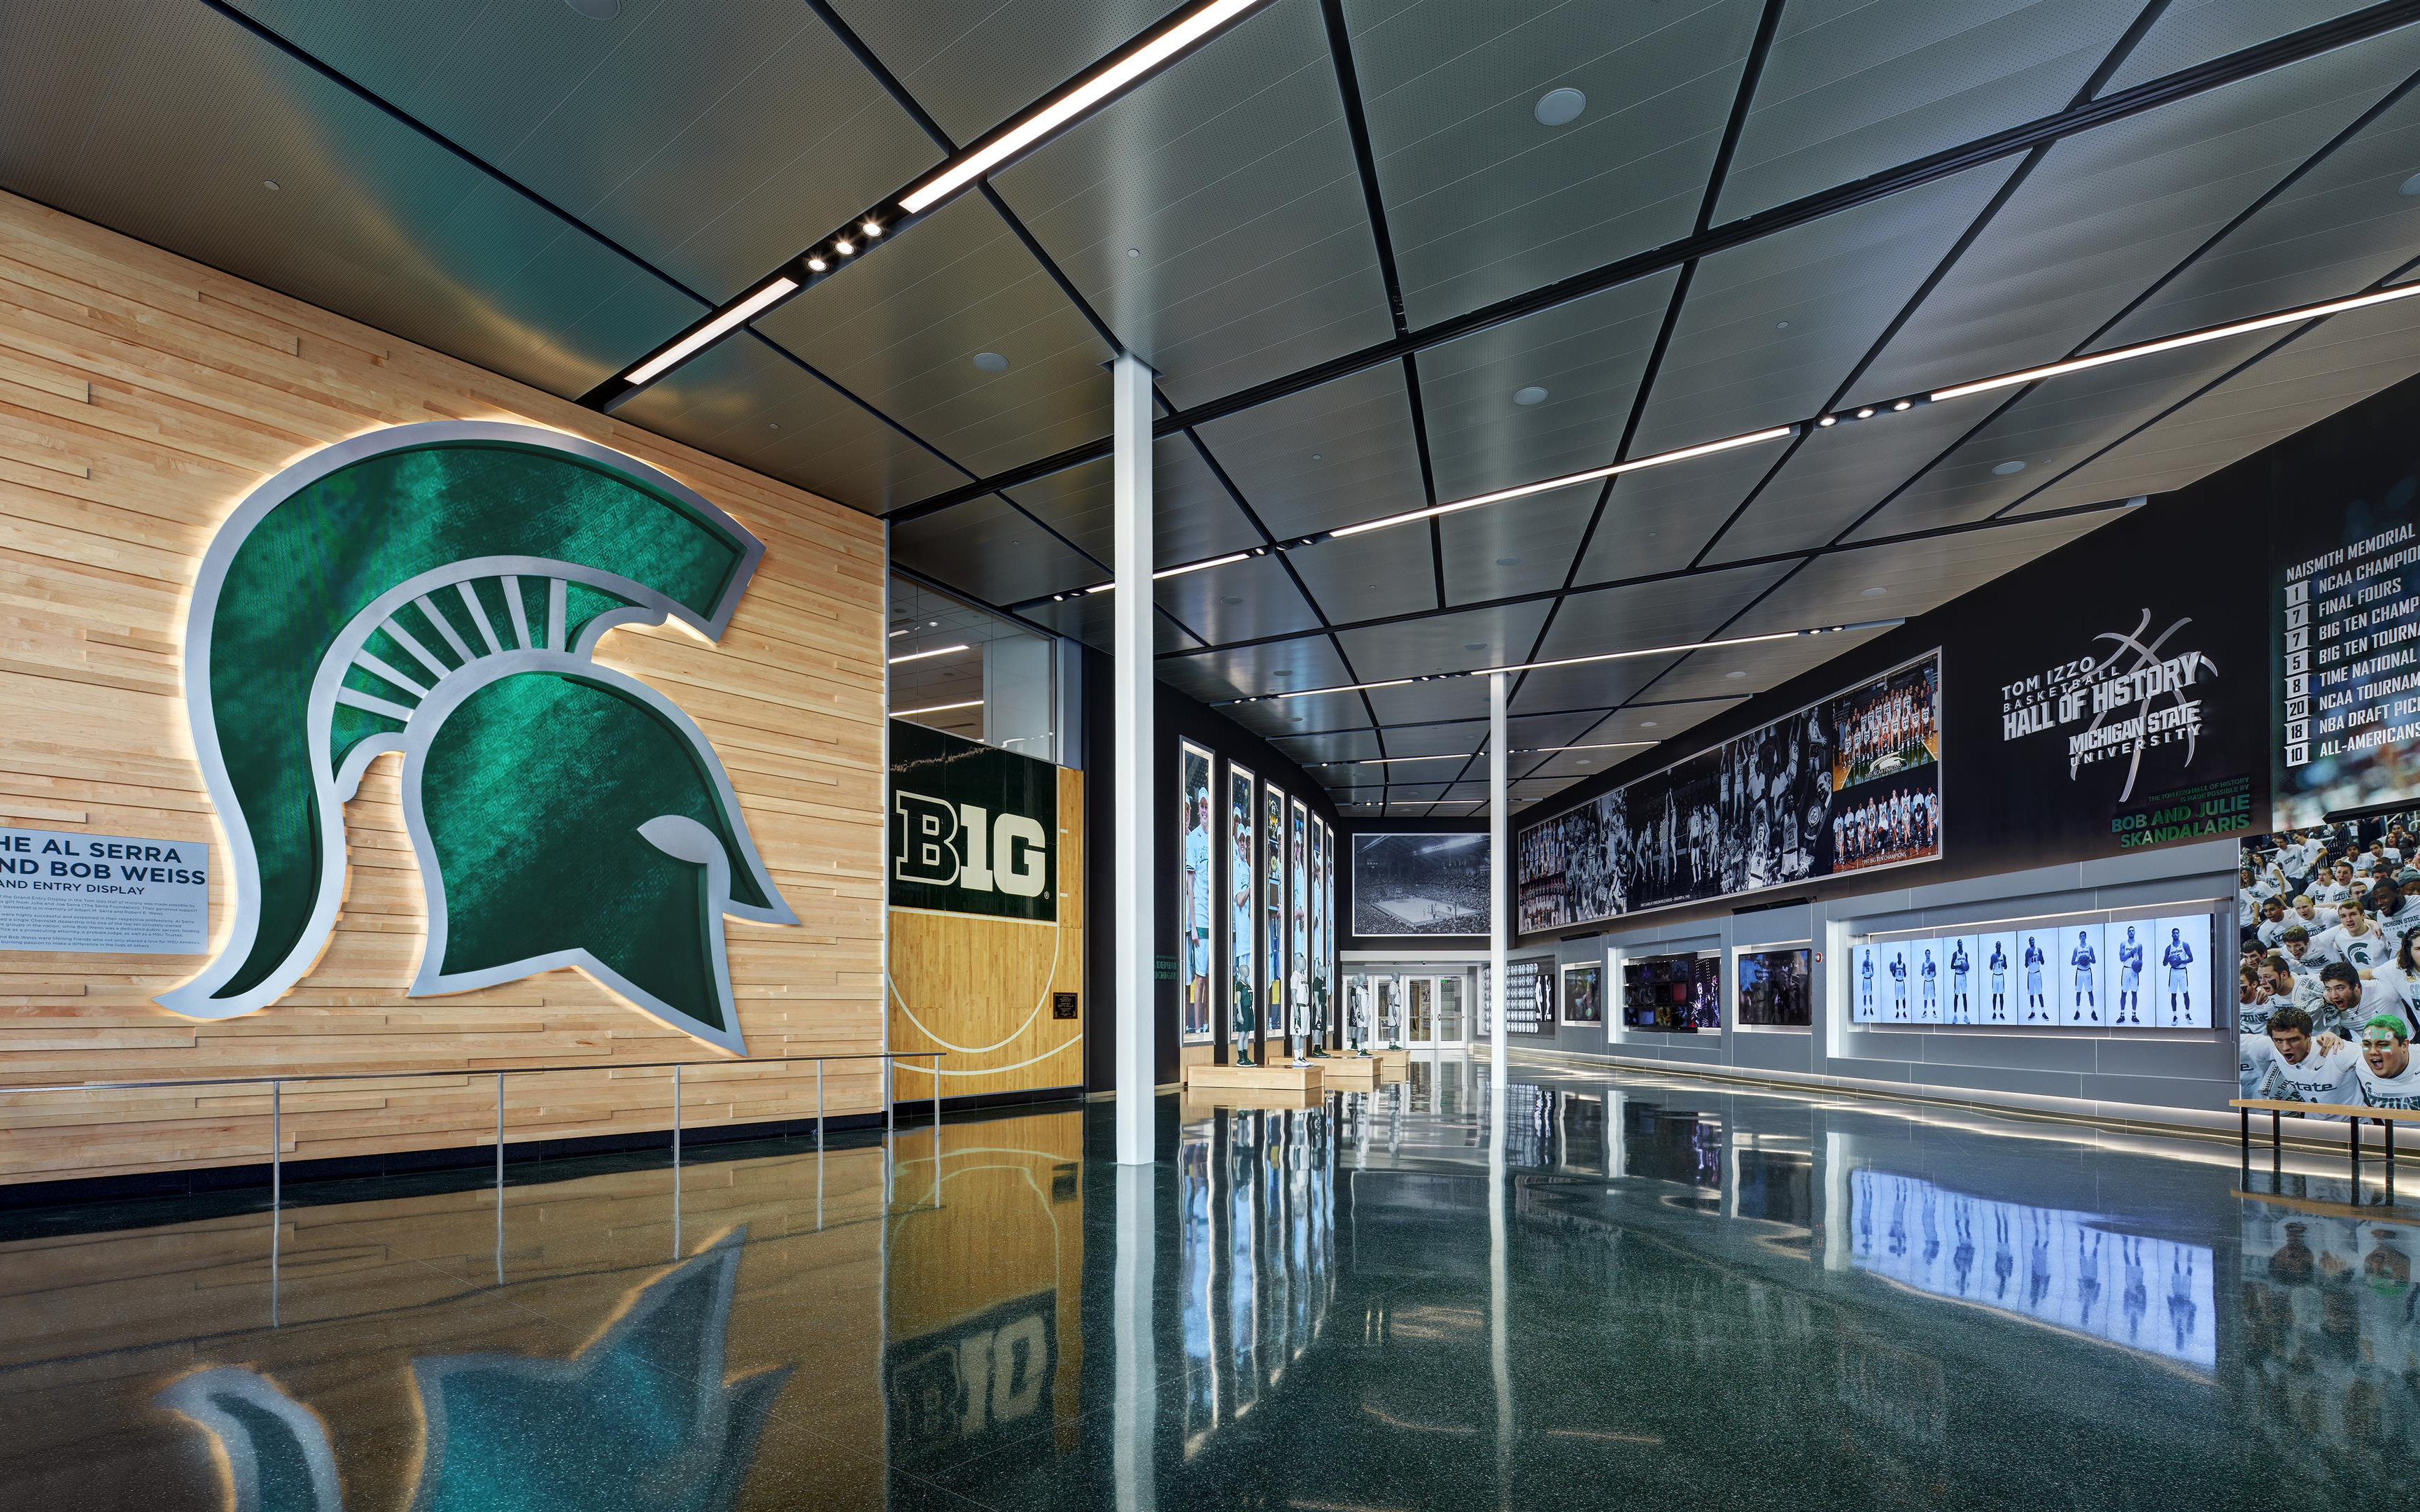 michigan state university breslin student events center